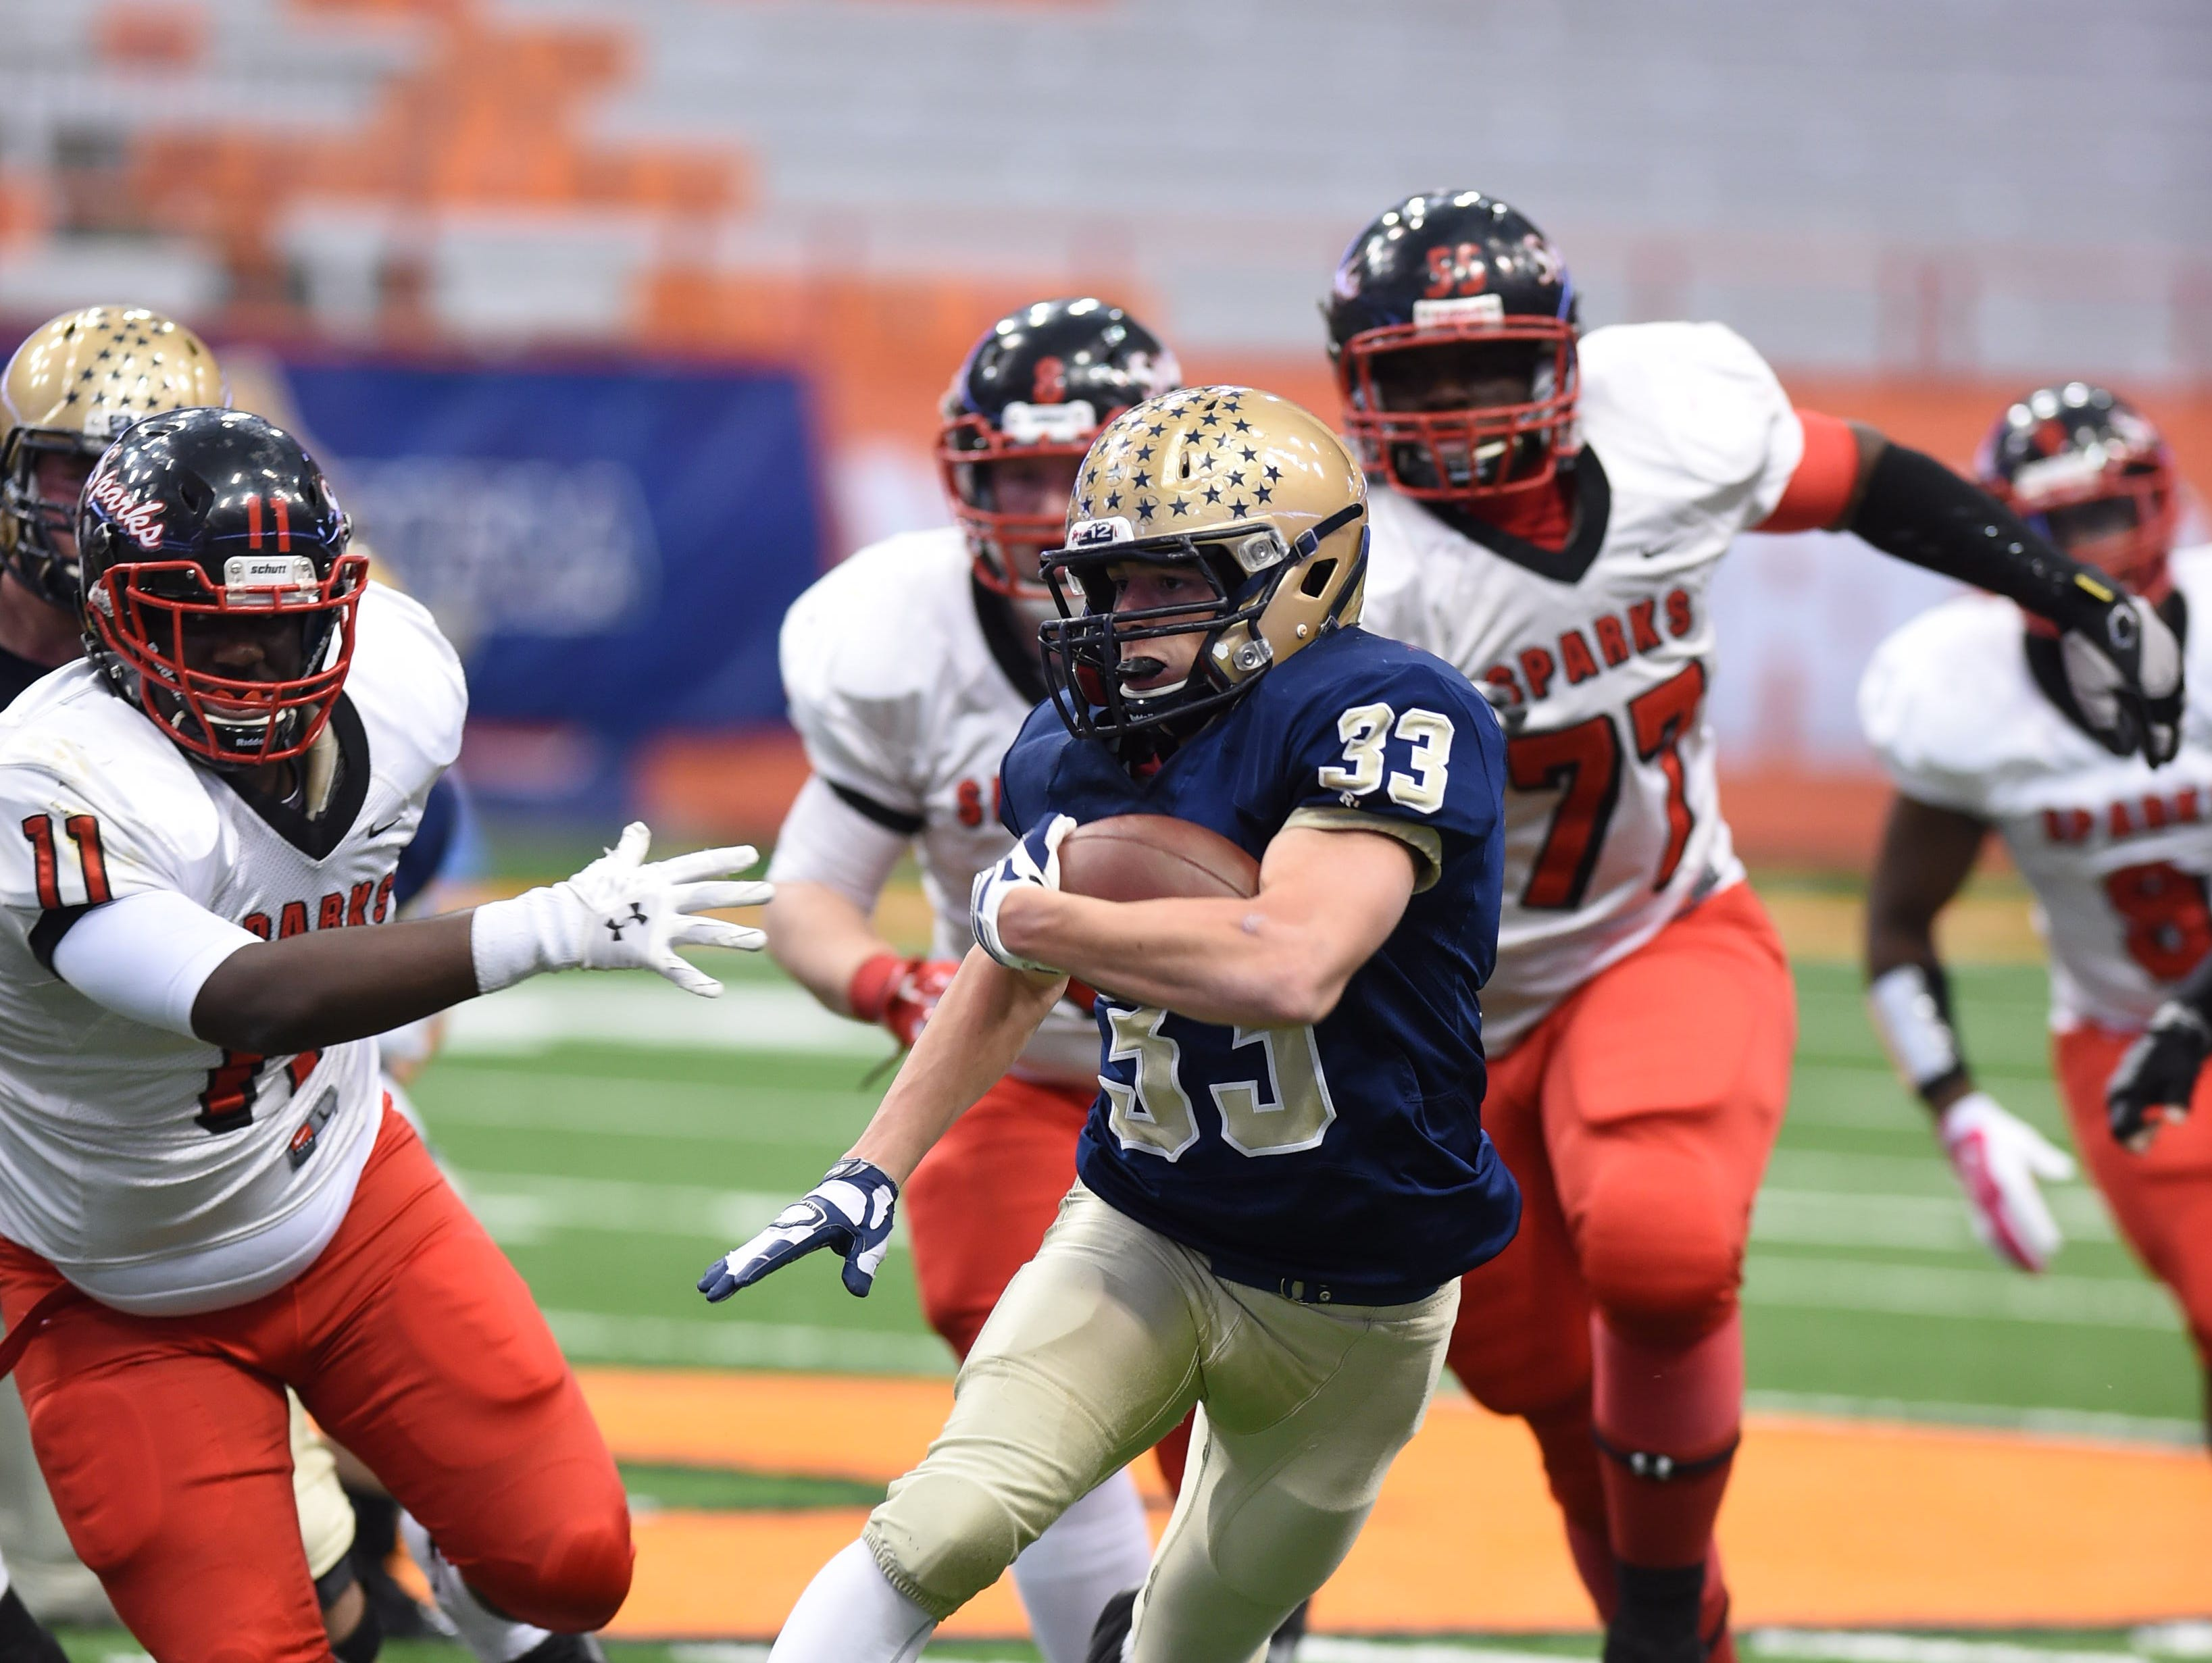 Lourdes' Christopher Salotto carries the ball through the South Park defense during the New York State Championship final in Syracuse on Friday.